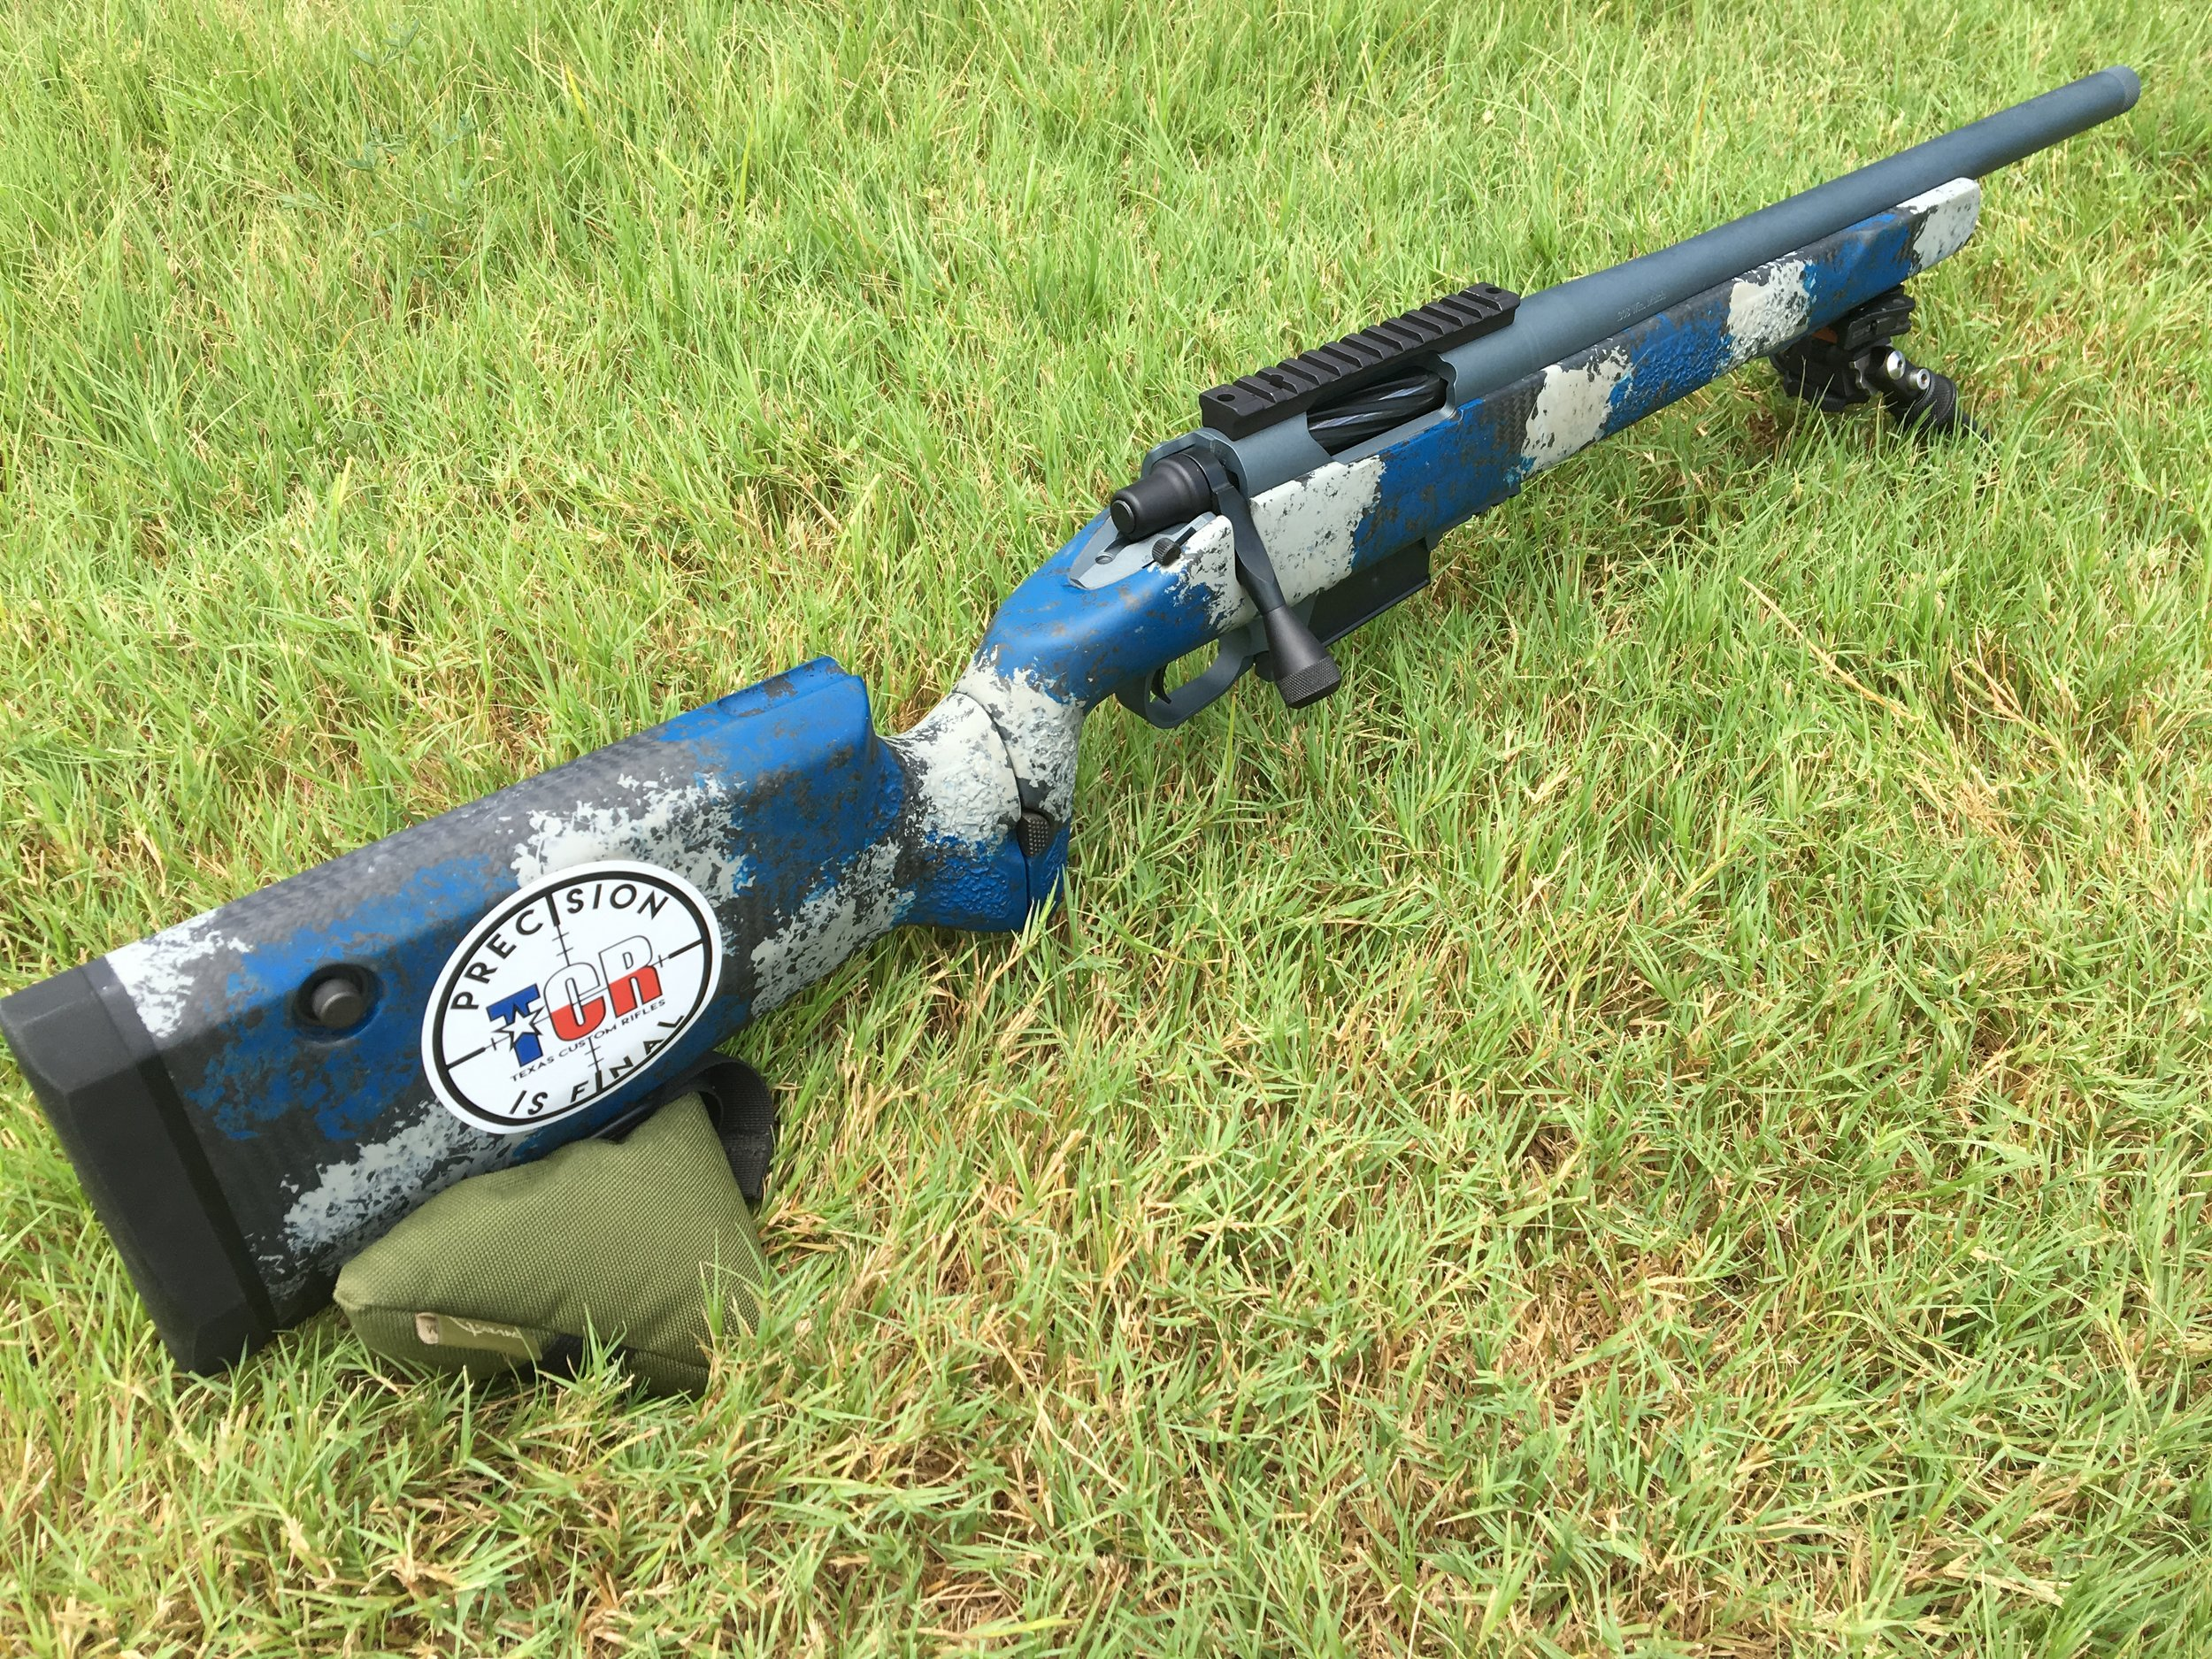 """308 WIN MATCH  STILLER TAC30, ROCK CREEK 18"""" BARREL, TIMNEY CALVIN ELITE TRIGGER, MANNERS EHF1 FOLDING STOCK, HAWKINS DBM W/ 5RD MAG, MUZZLE THREADED 5/8-24. BIPOD NOT INCLUDED BUT WE SELL ATLAS BIPODS.  THIS RIFLE WAS BUILT AS A DISPLAY. IT HAS LESS THAN 200 ROUNDS THROUGH IT AND HOLDS 1/2 MOA WITH QUALITY FACTORY AMMO.  $3995 PLUS ANY TAXES AND SHIPPING REQUIRED."""